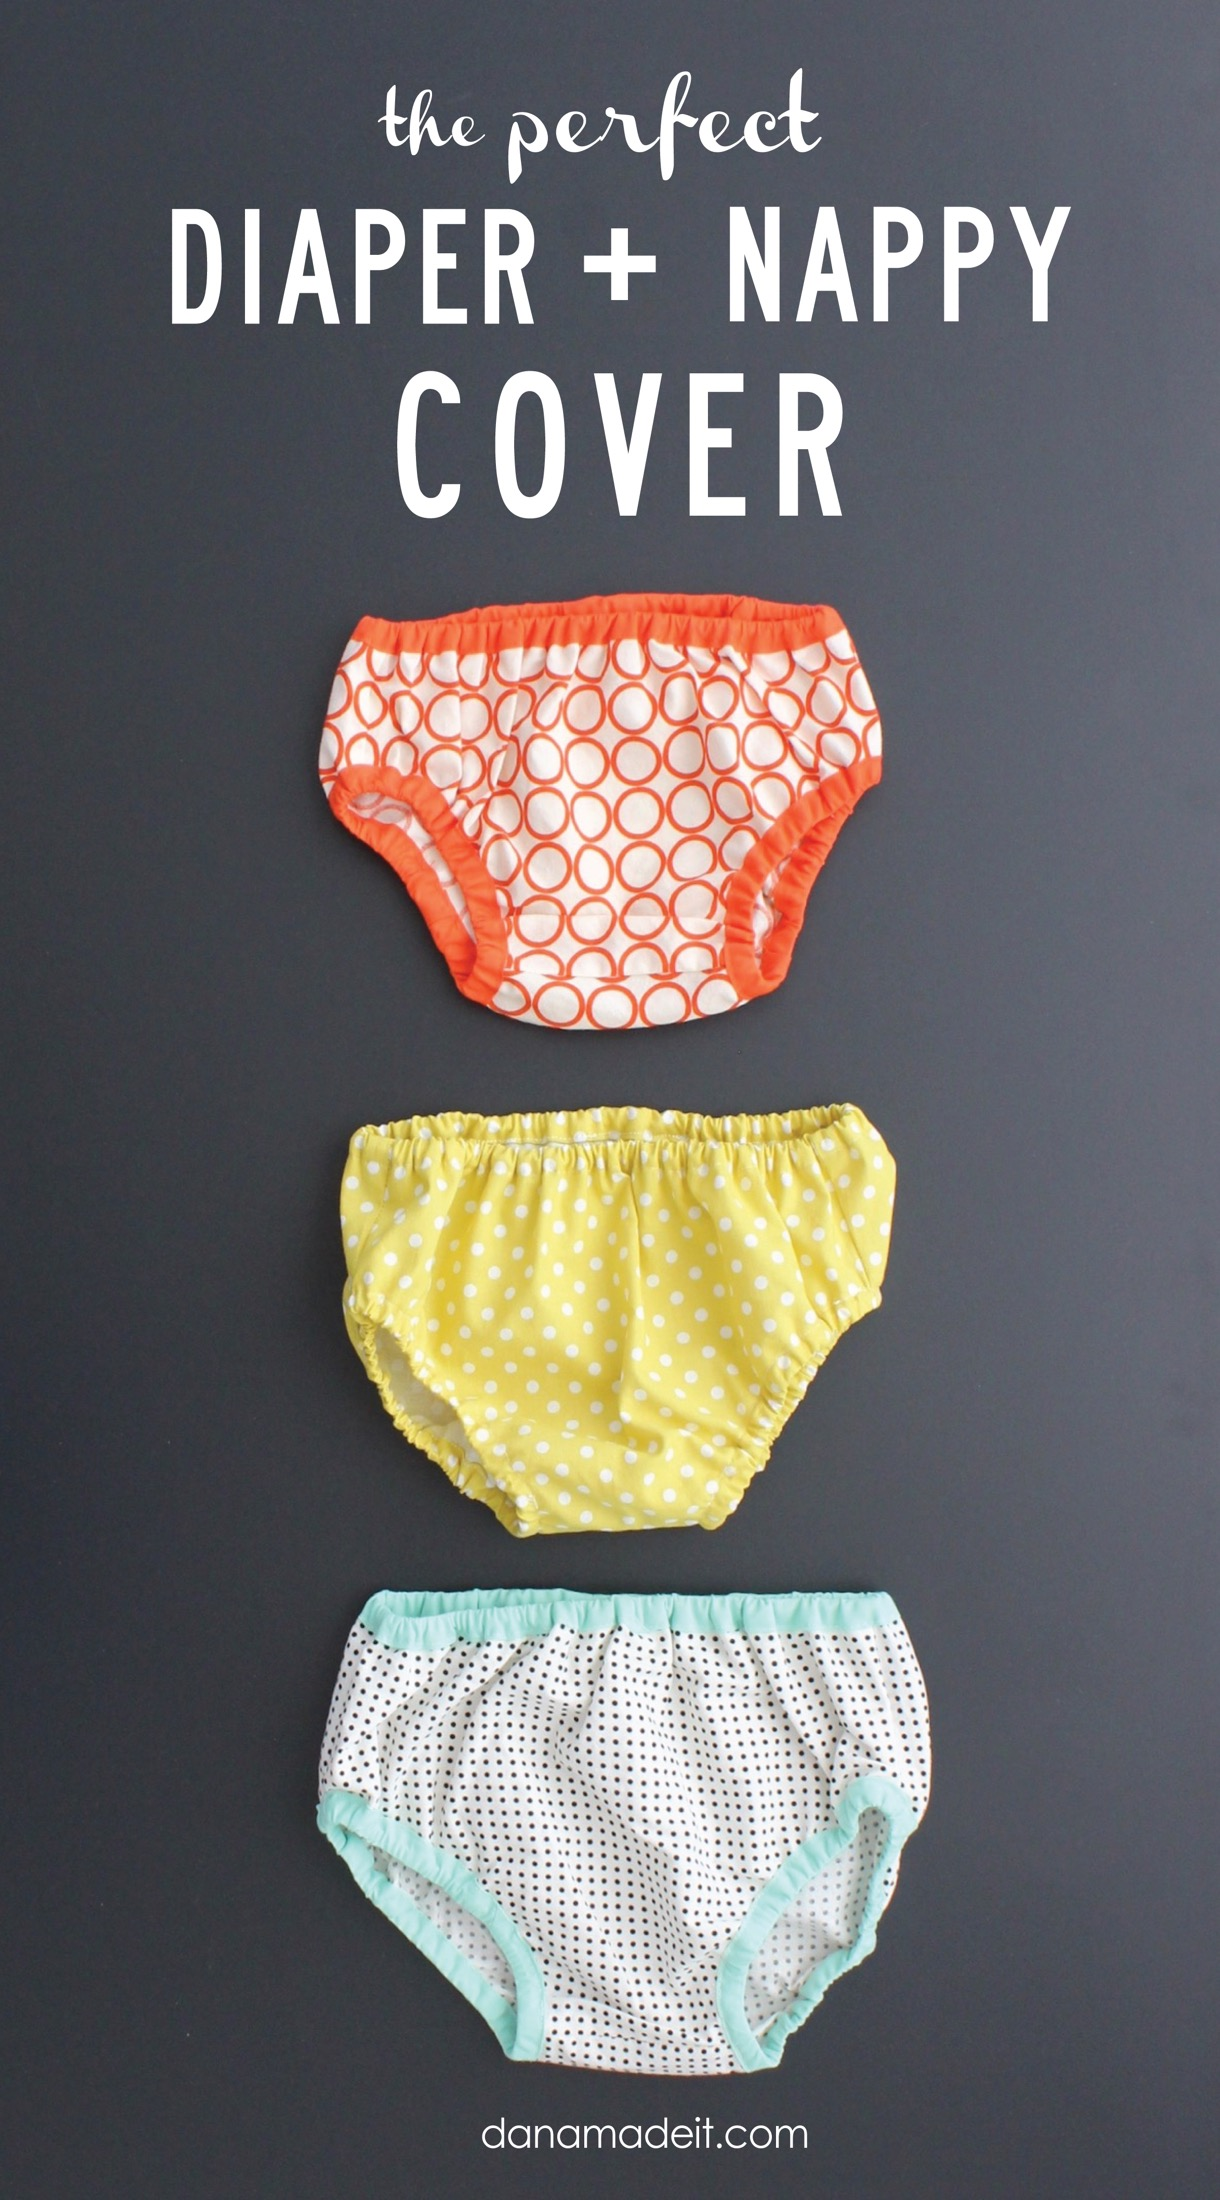 Diaper Covers – MADE EVERYDAY